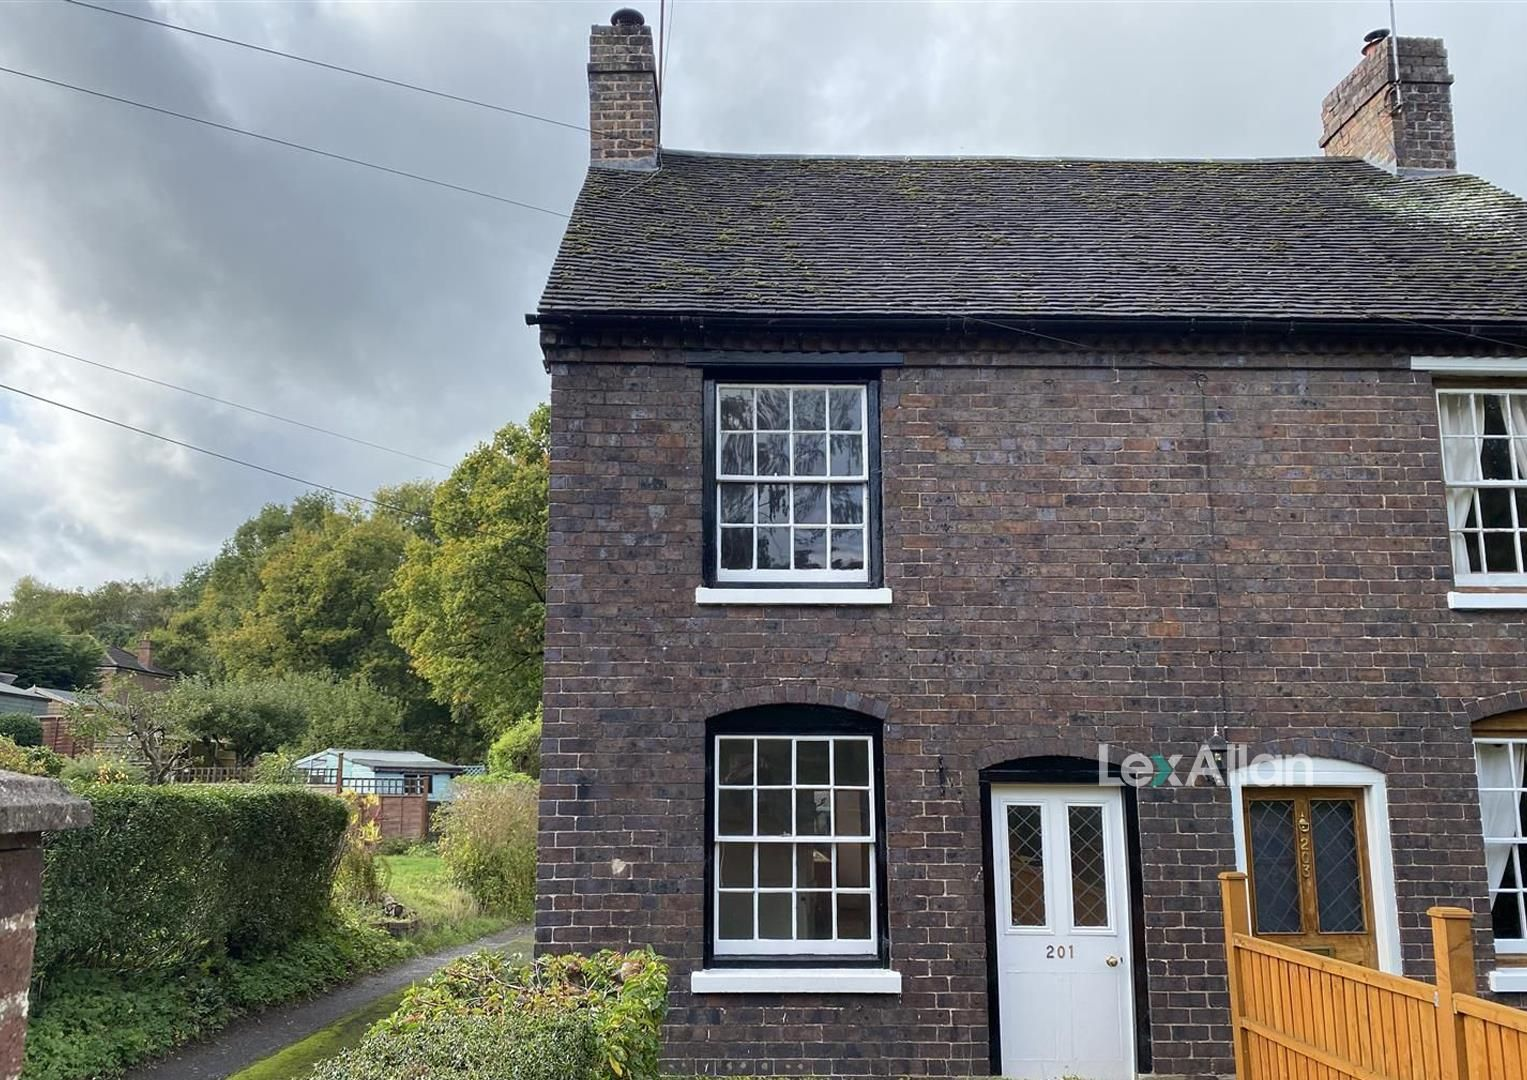 2 bed end-of-terrace for sale in Kinver, DY7